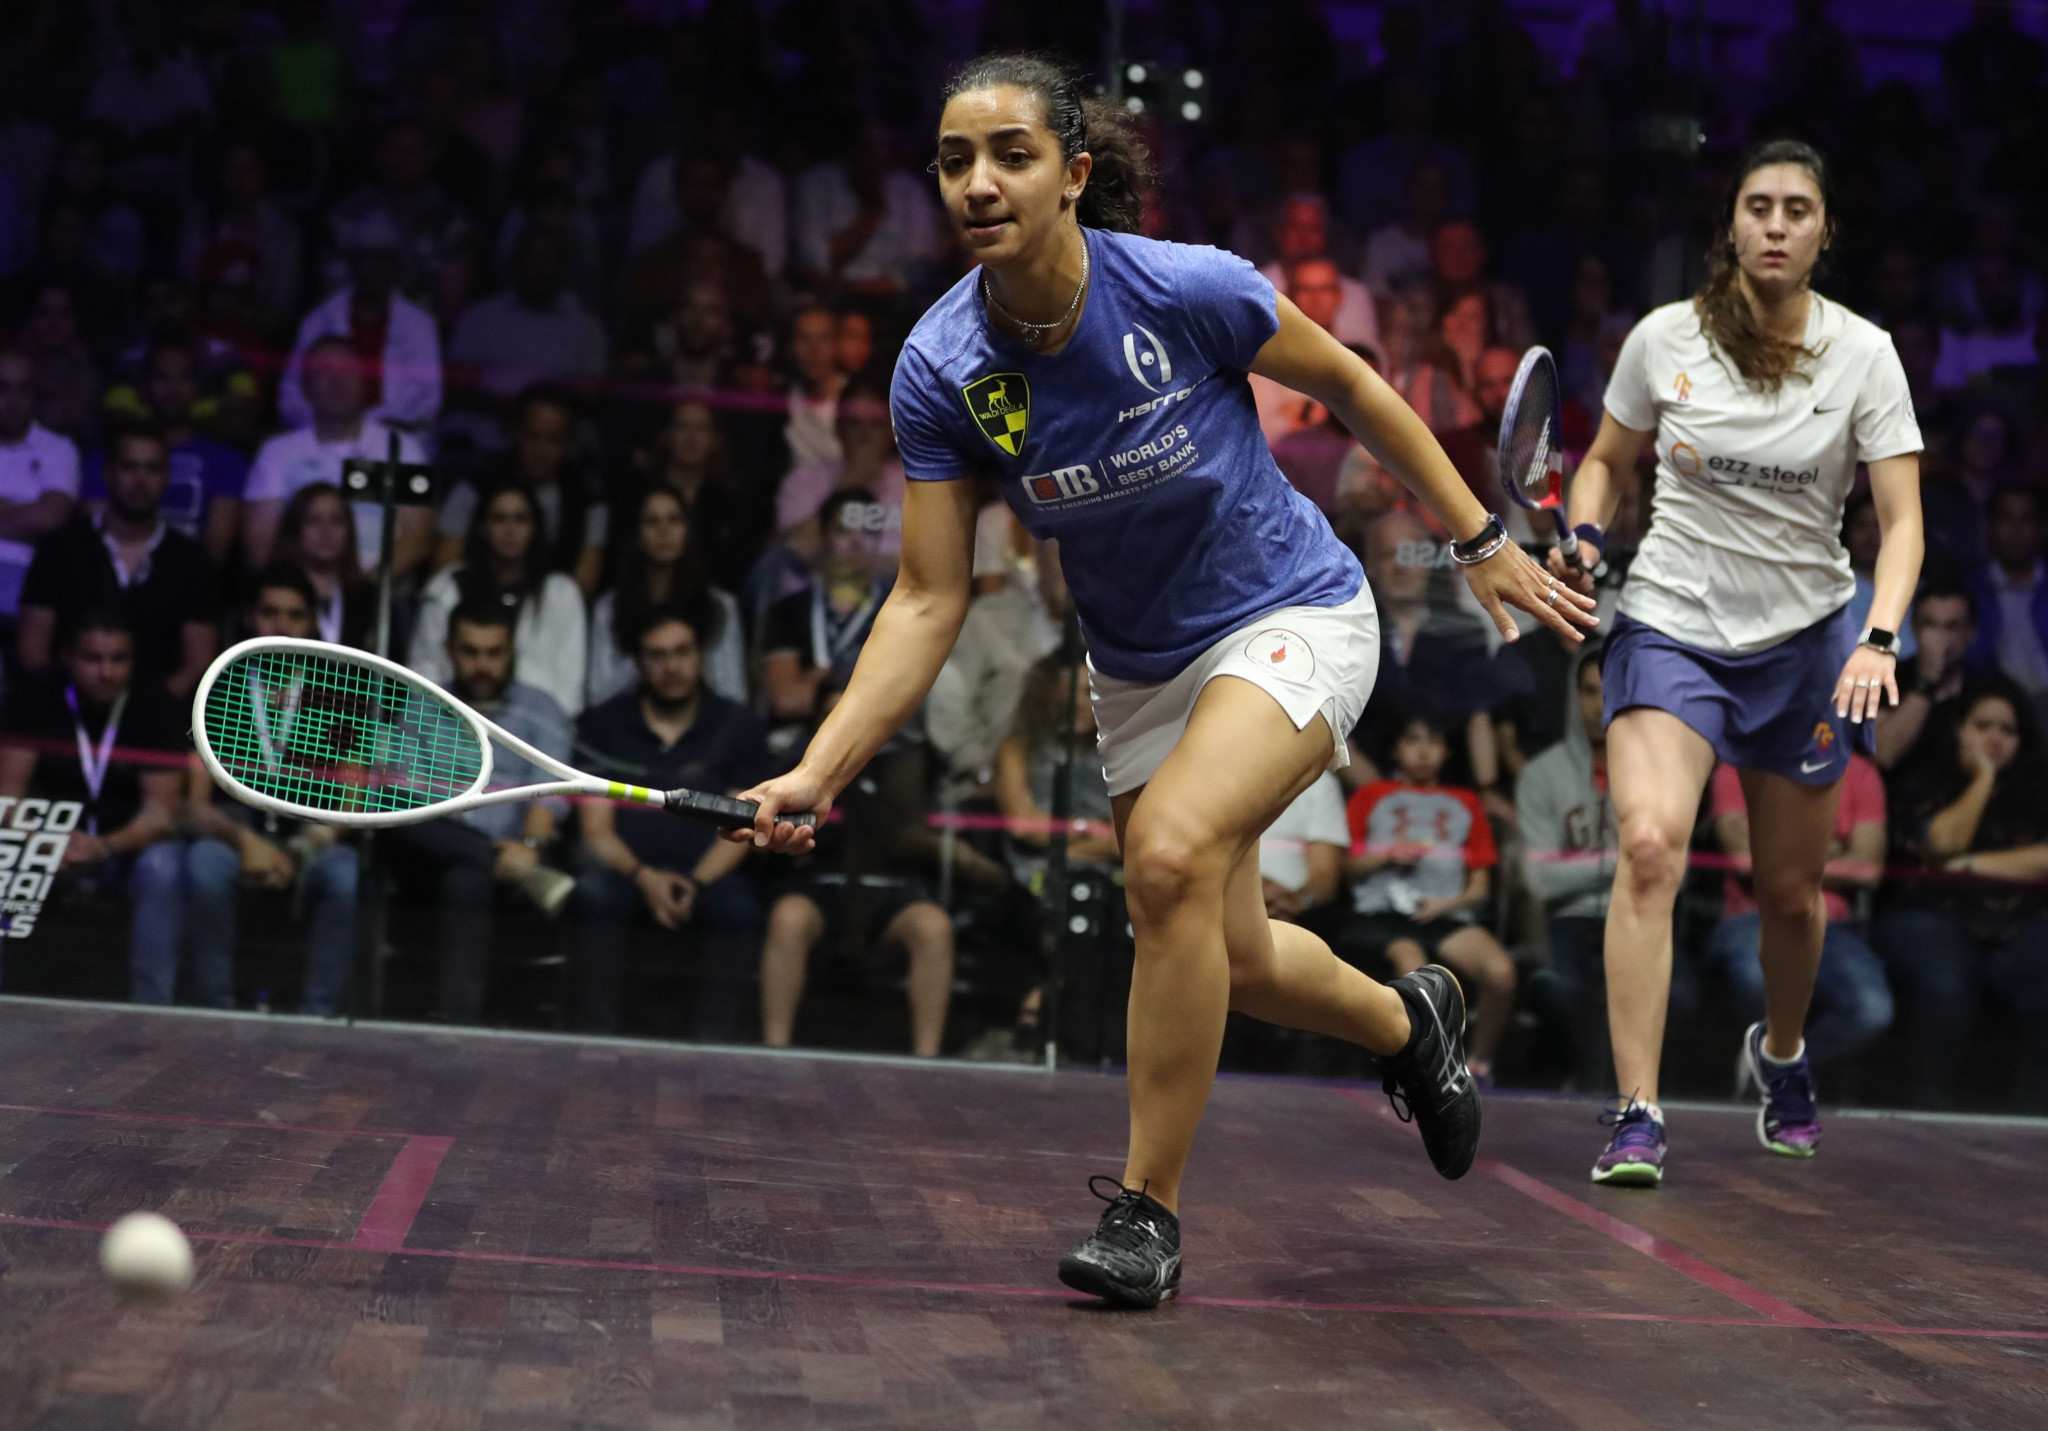 El Welily and Elshorbagy among winners as seeds dominate day four at PSA Tournament of Champions